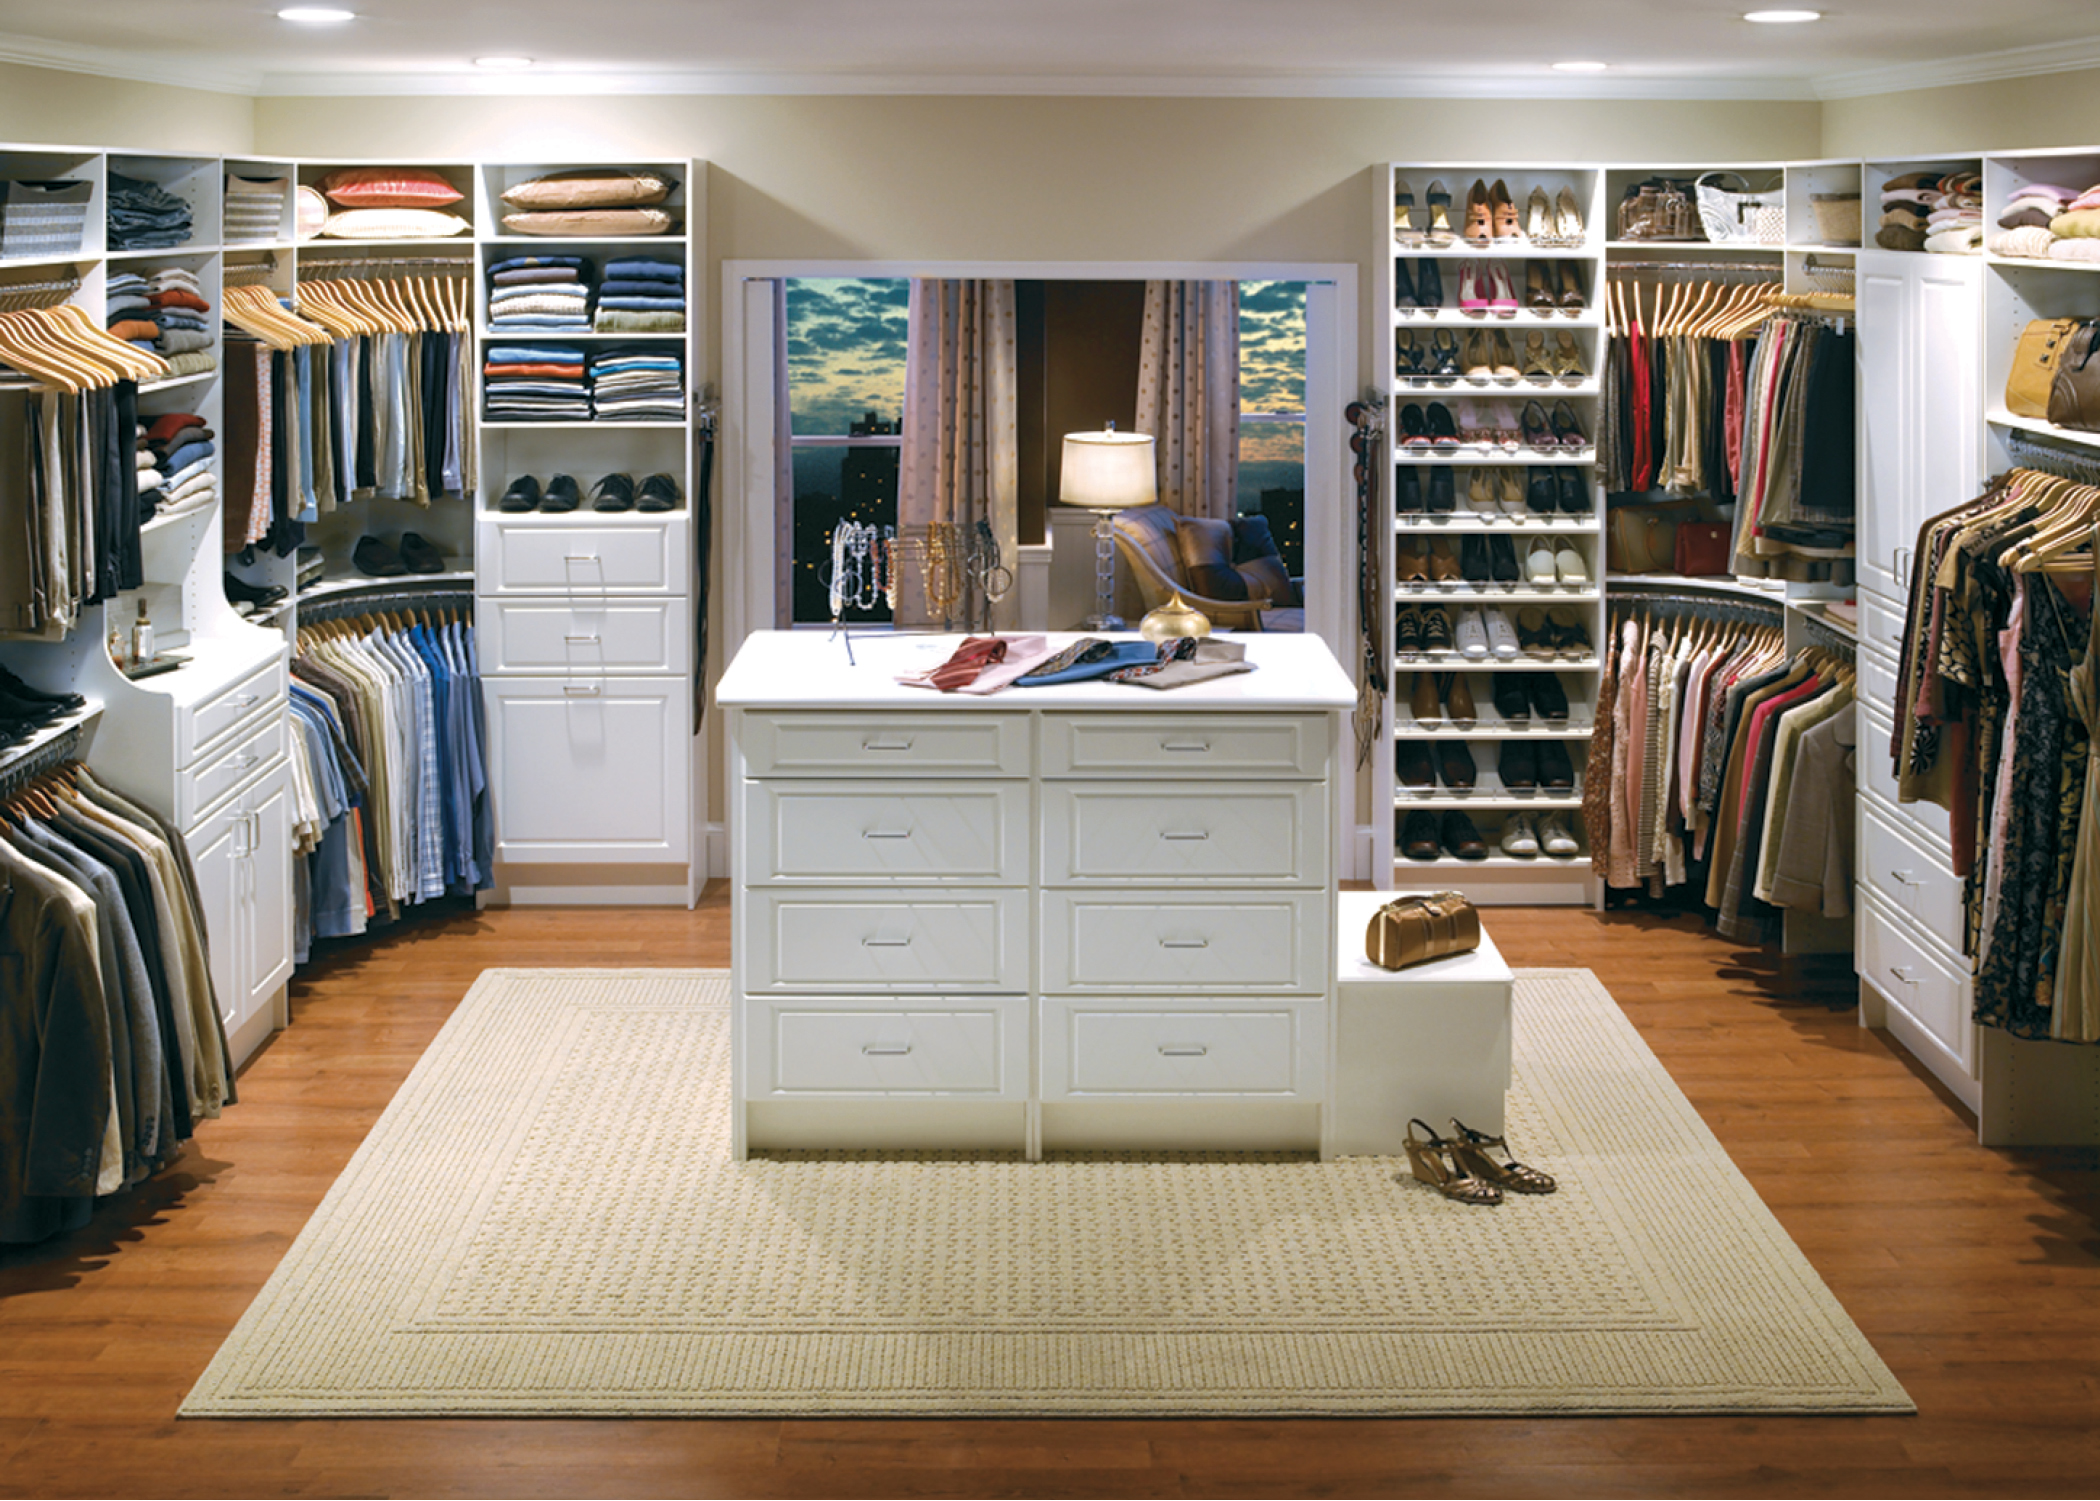 guide ideas tips planning your organization closet to design how infographic in walk easyclosets dream plan space